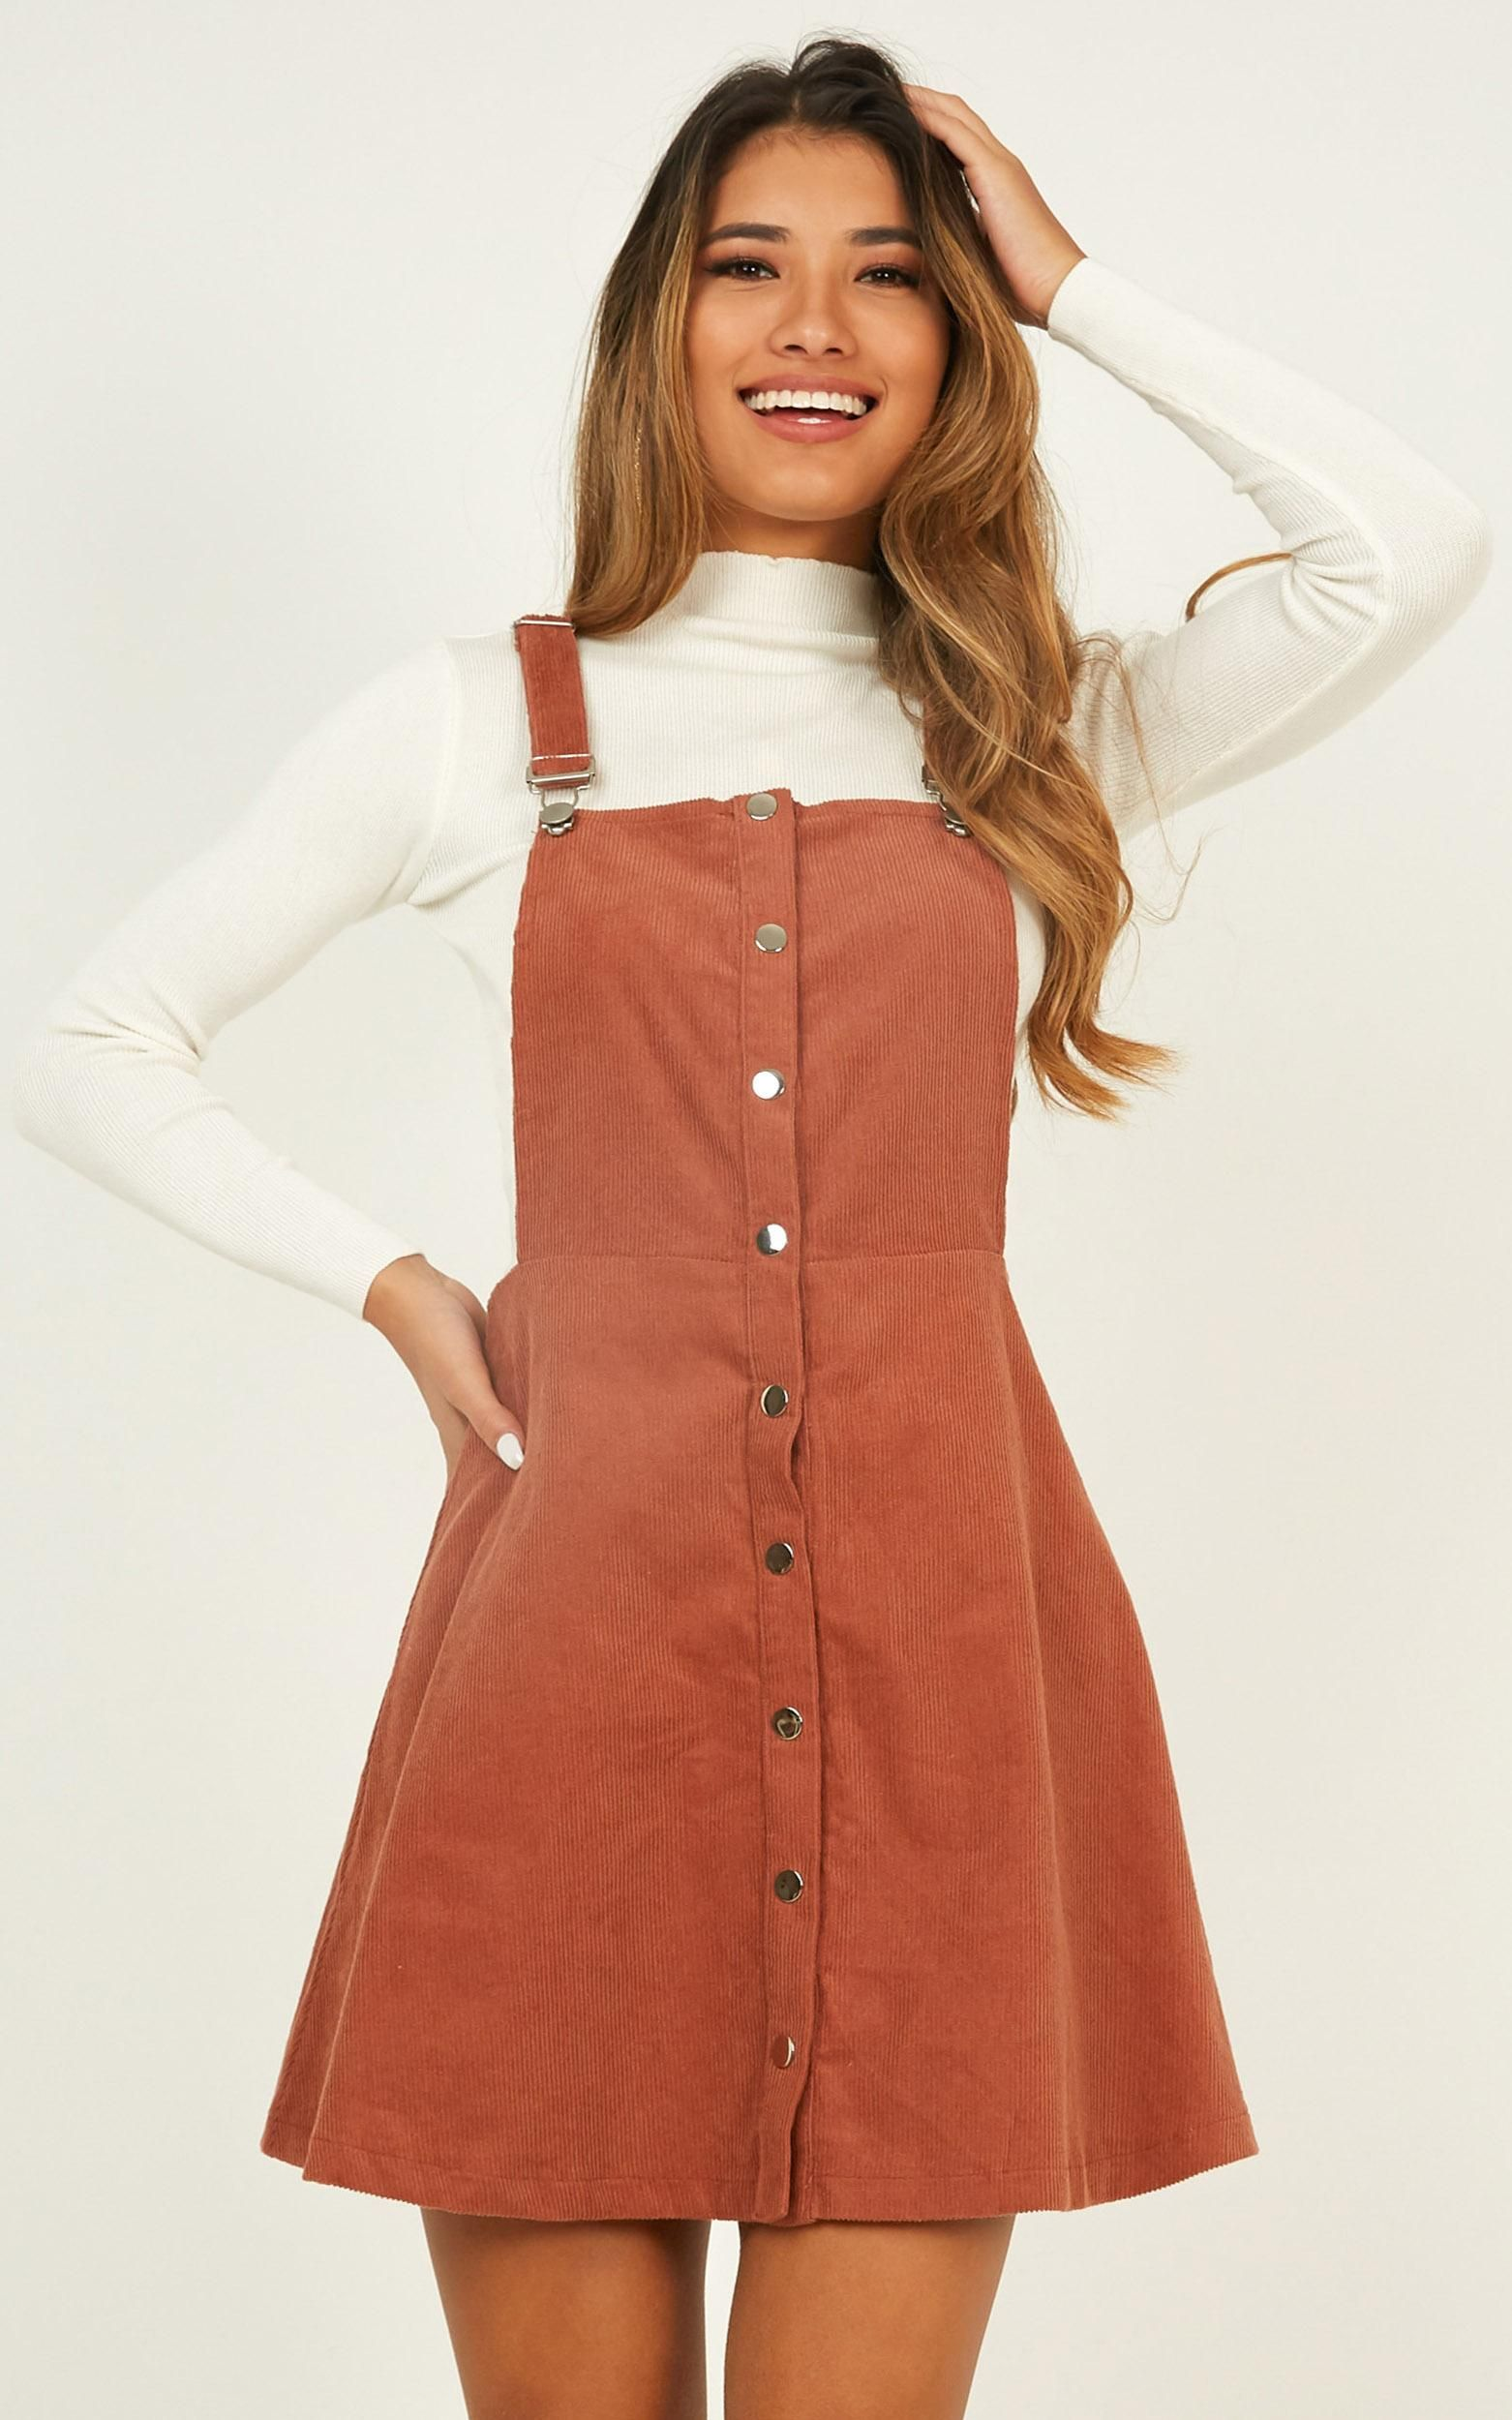 Not For Me Pinafore Dress In Rust Corduroy Produced By SHOWPO #cuteoutfits